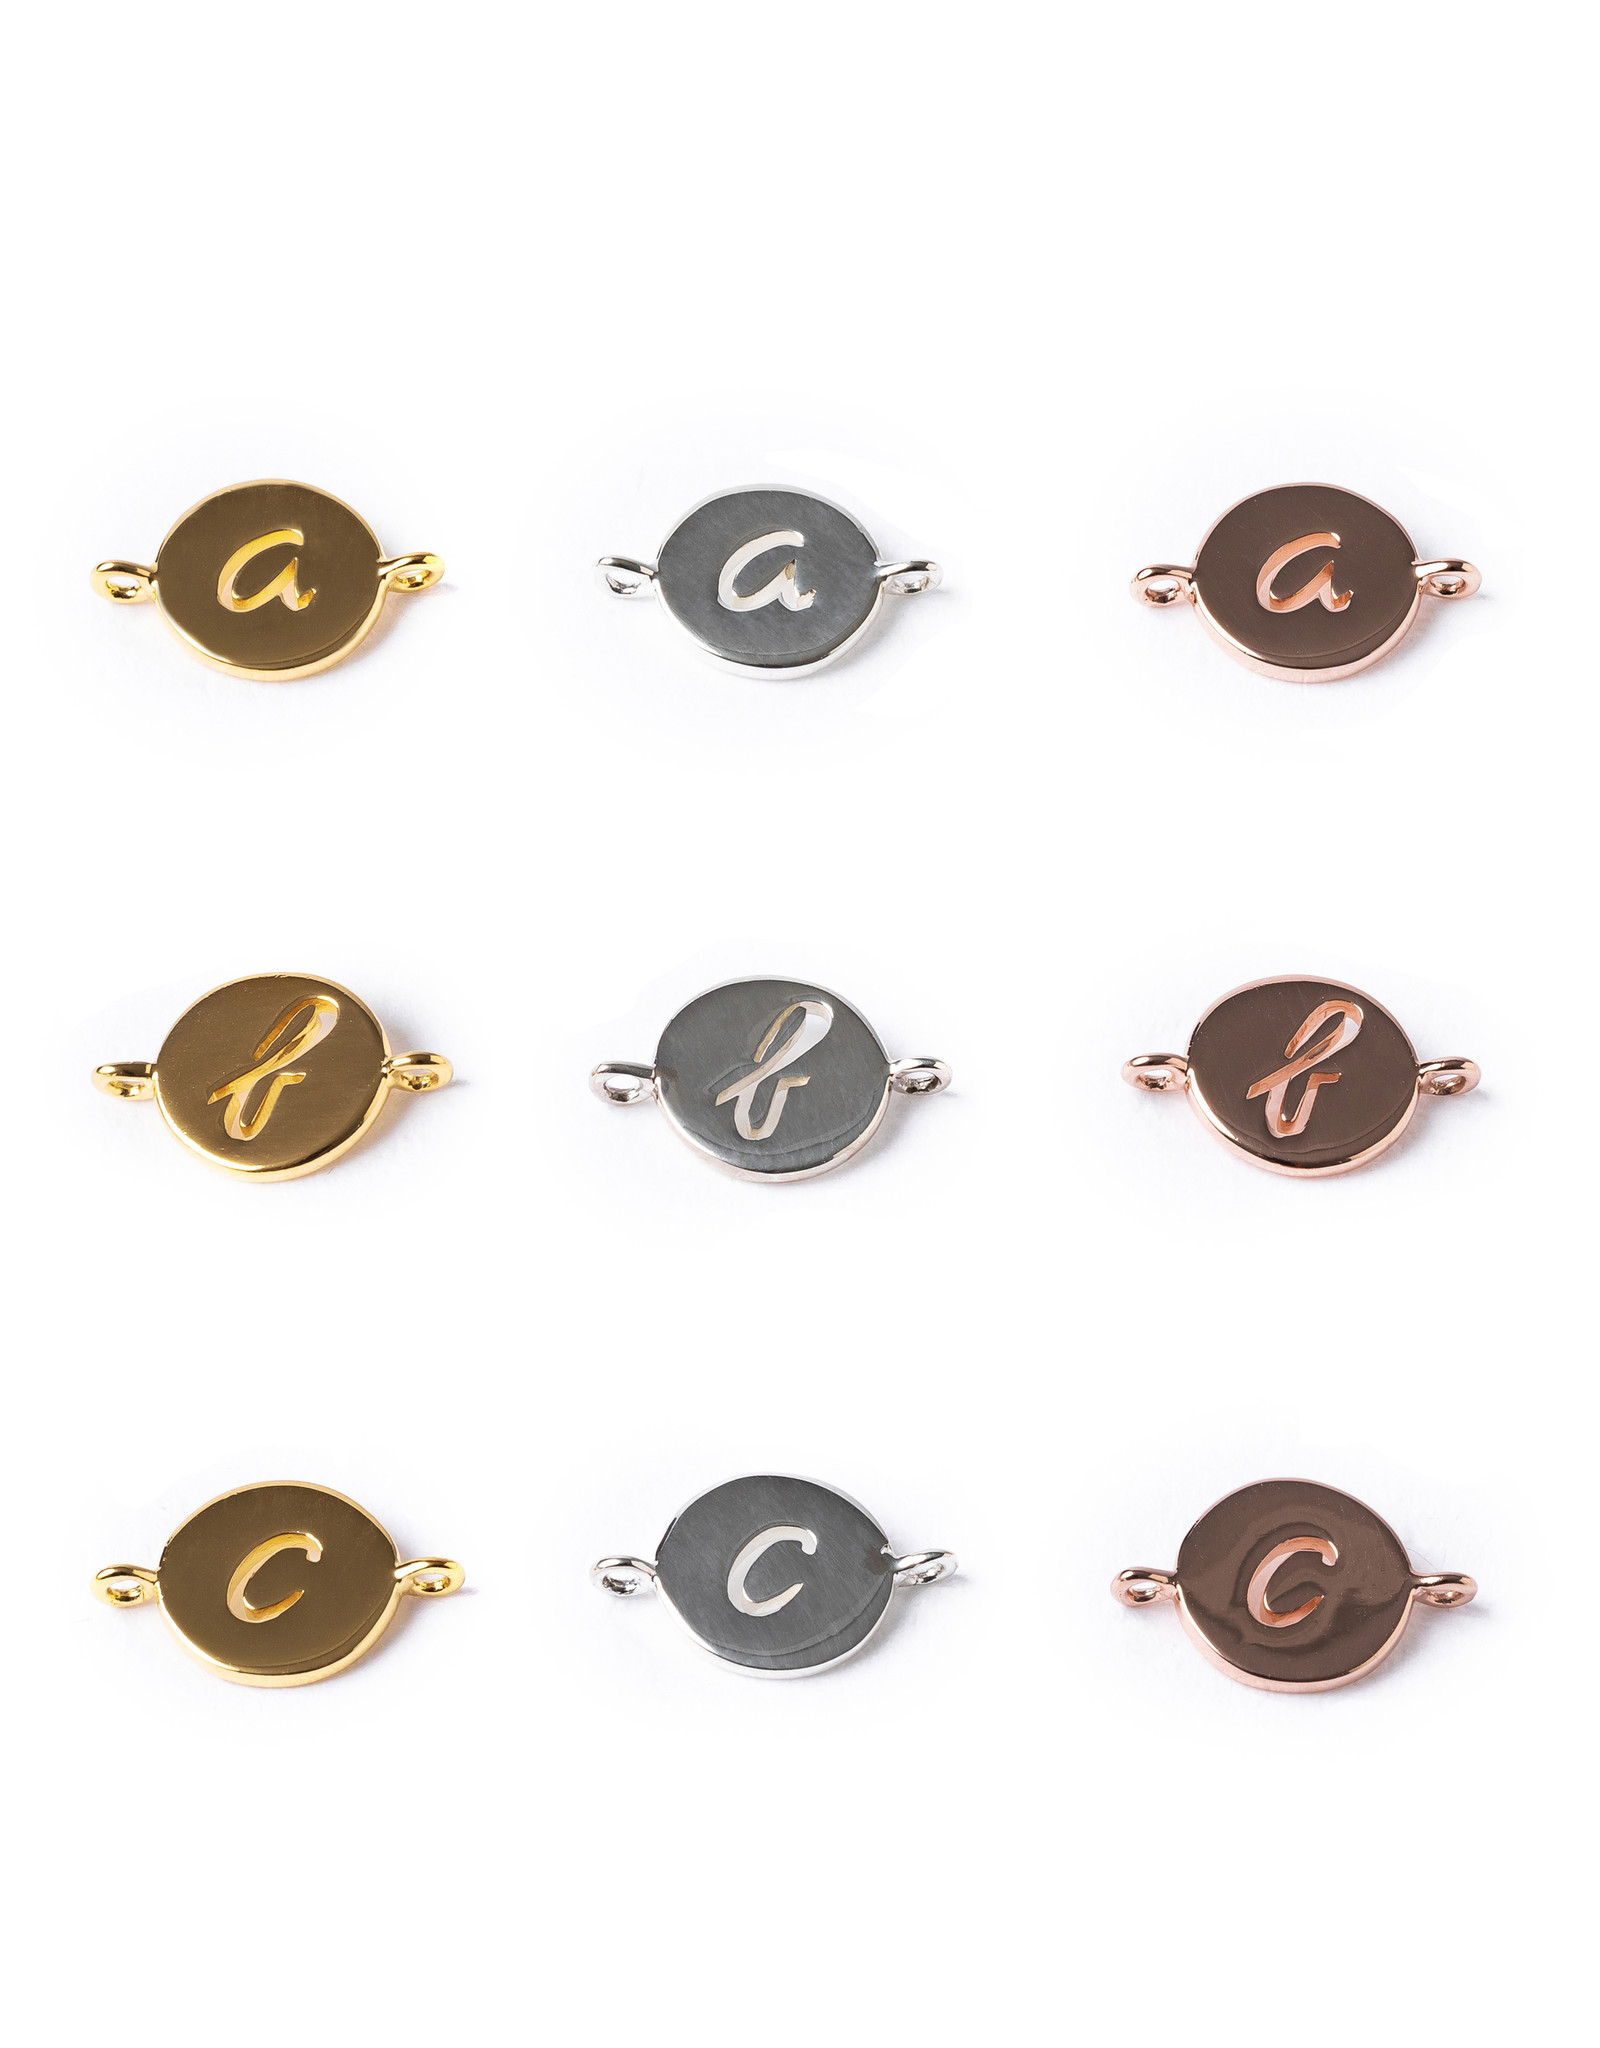 Design your necklace with 4 charms